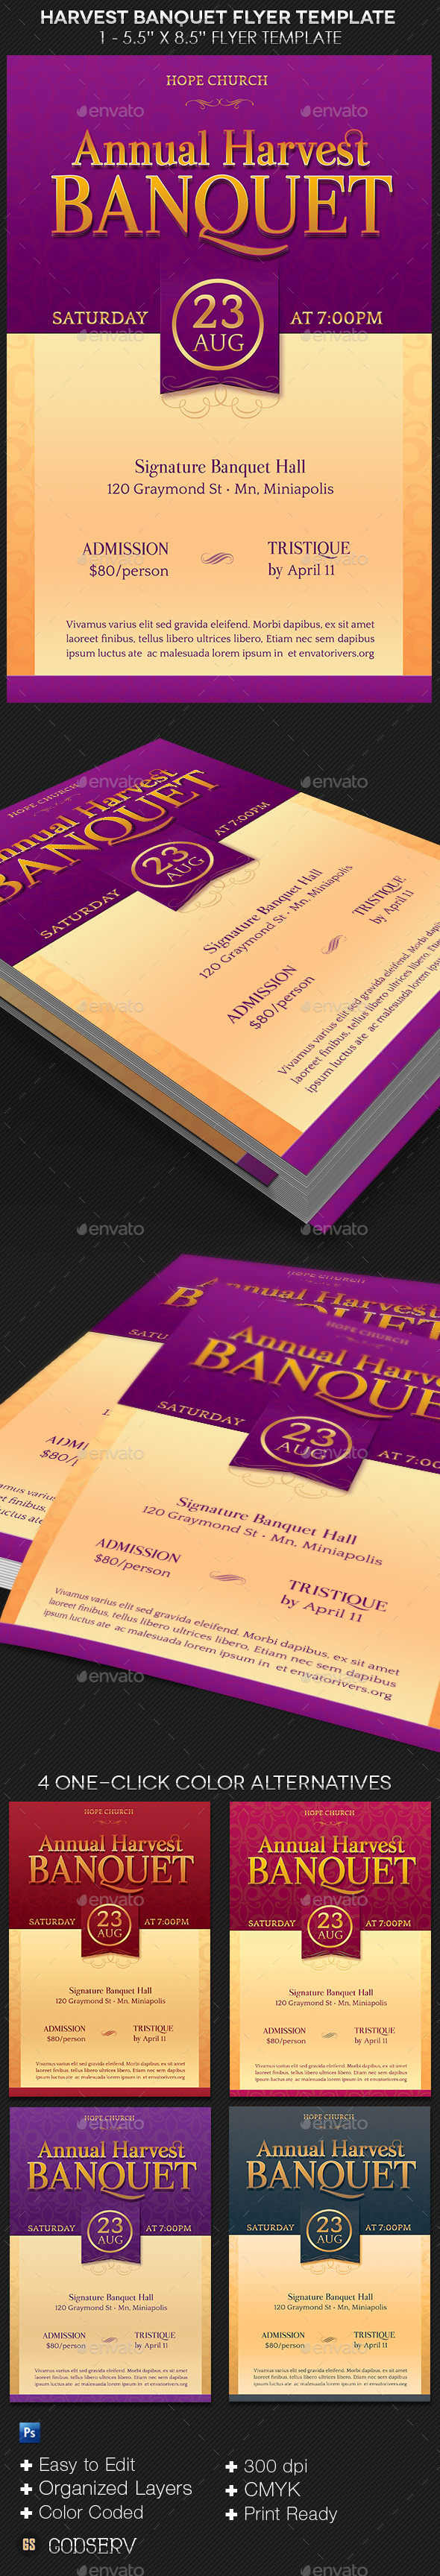 Harvest Banquet Flyer Template - Church Flyers